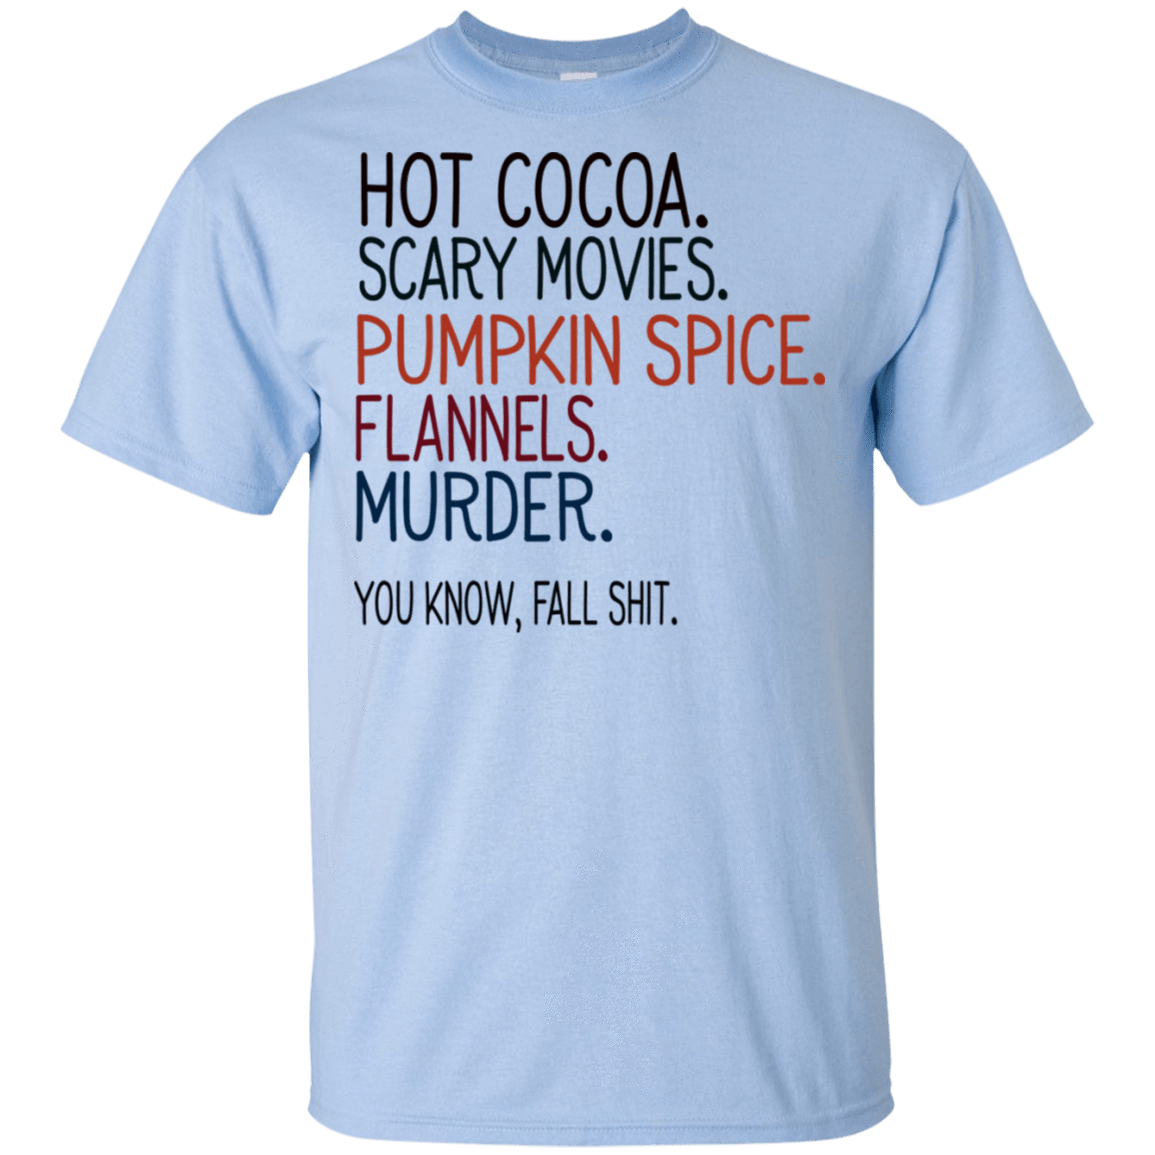 Hot Cocoa Scary Movies Pumpkin Spice Flannels Murder You Know Fall Shit T-Shirts, Hoodie, Tank 22-9800-78811043-47430 - Tee Ript